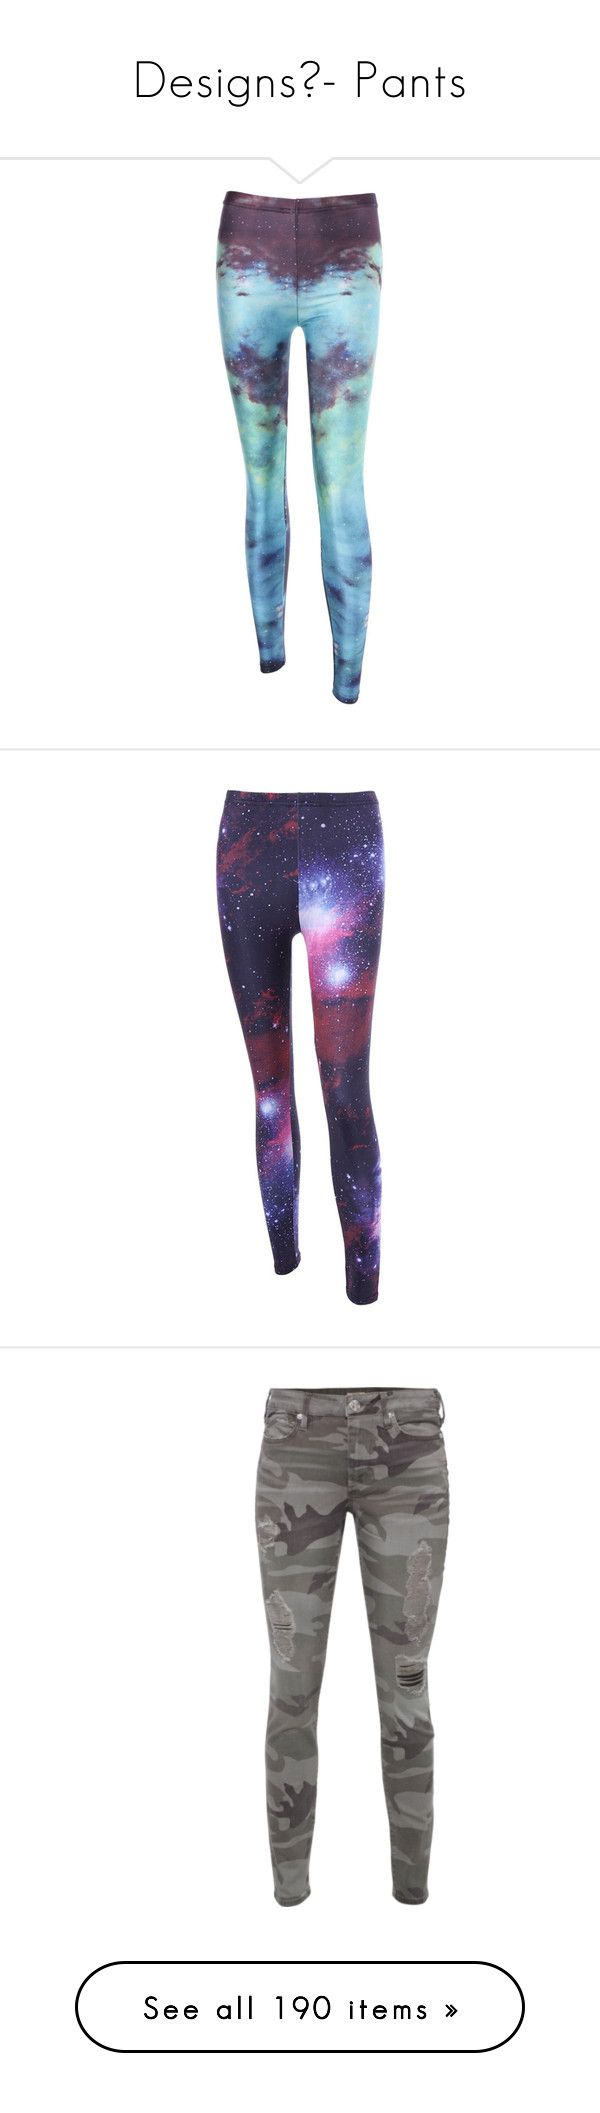 """""""Designs🖌- Pants"""" by nattiexo ❤ liked on Polyvore featuring pants, leggings, high waisted pants, blue galaxy leggings, galaxy leggings, nebula leggings, high-waisted trousers, bottoms, highwaist pants and galaxy print leggings"""